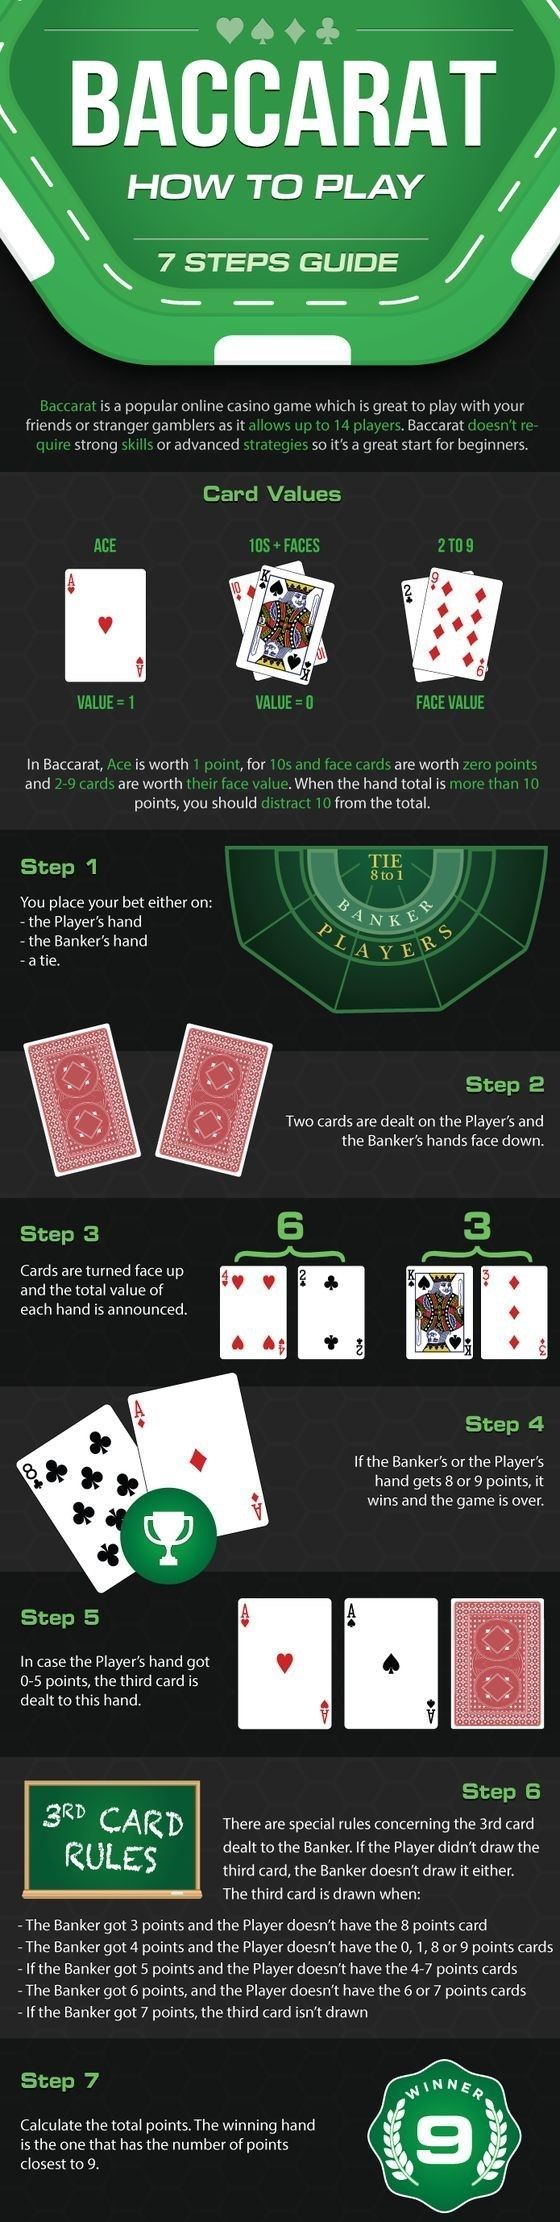 Online Baccarat Play Live In Our Online Casino Online Casino Baccarat Casino